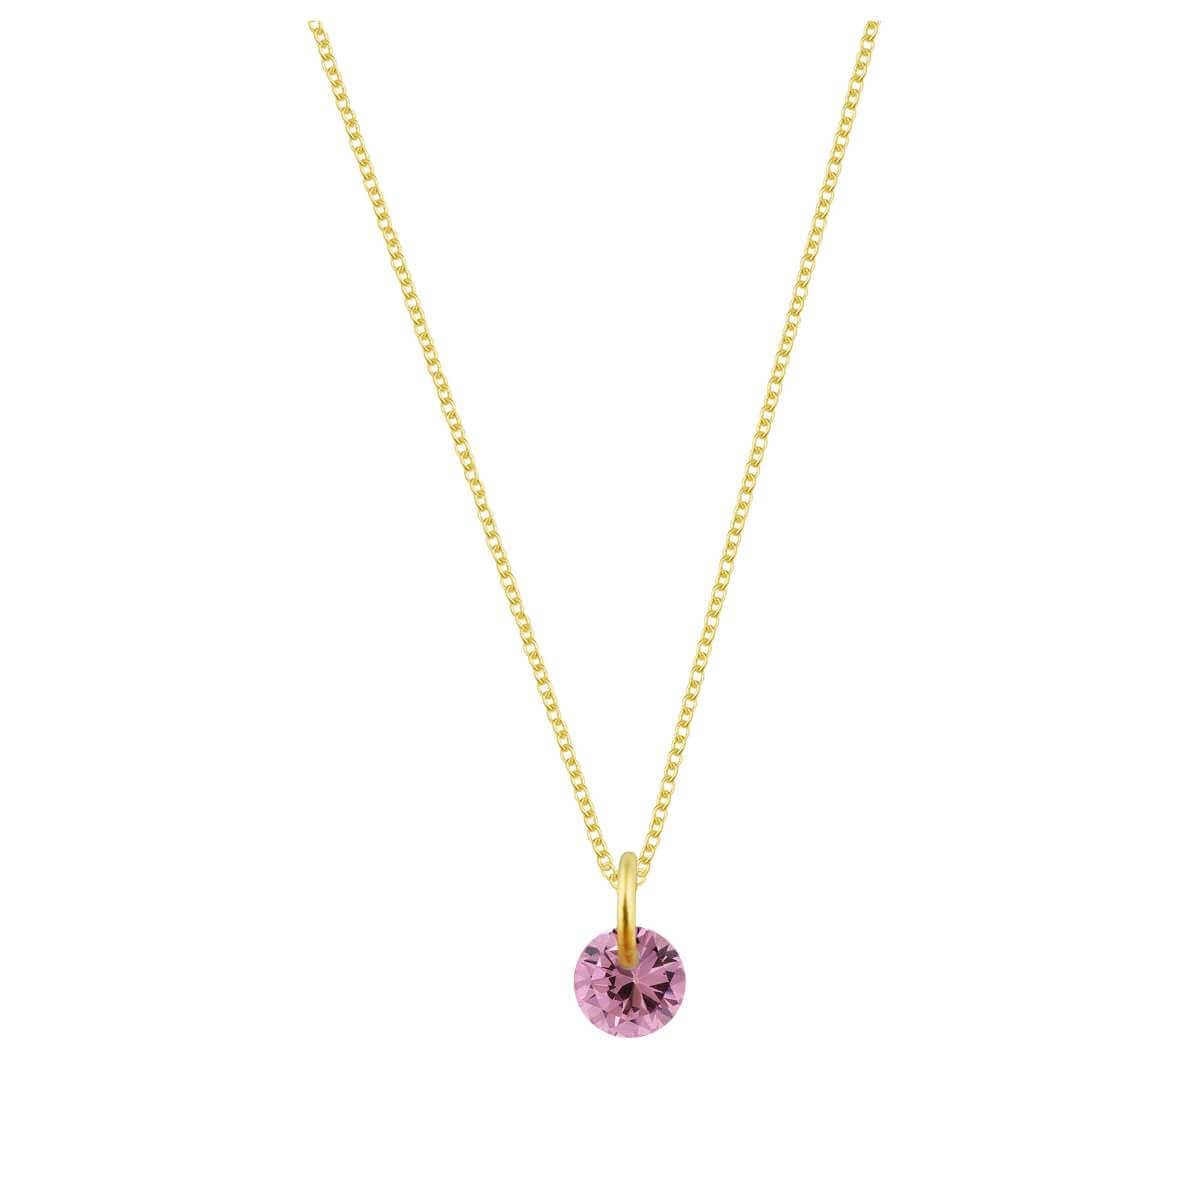 Gold Plated Sterling Silver & 4mm Tourmaline CZ Necklace - 16 - 22 Inches